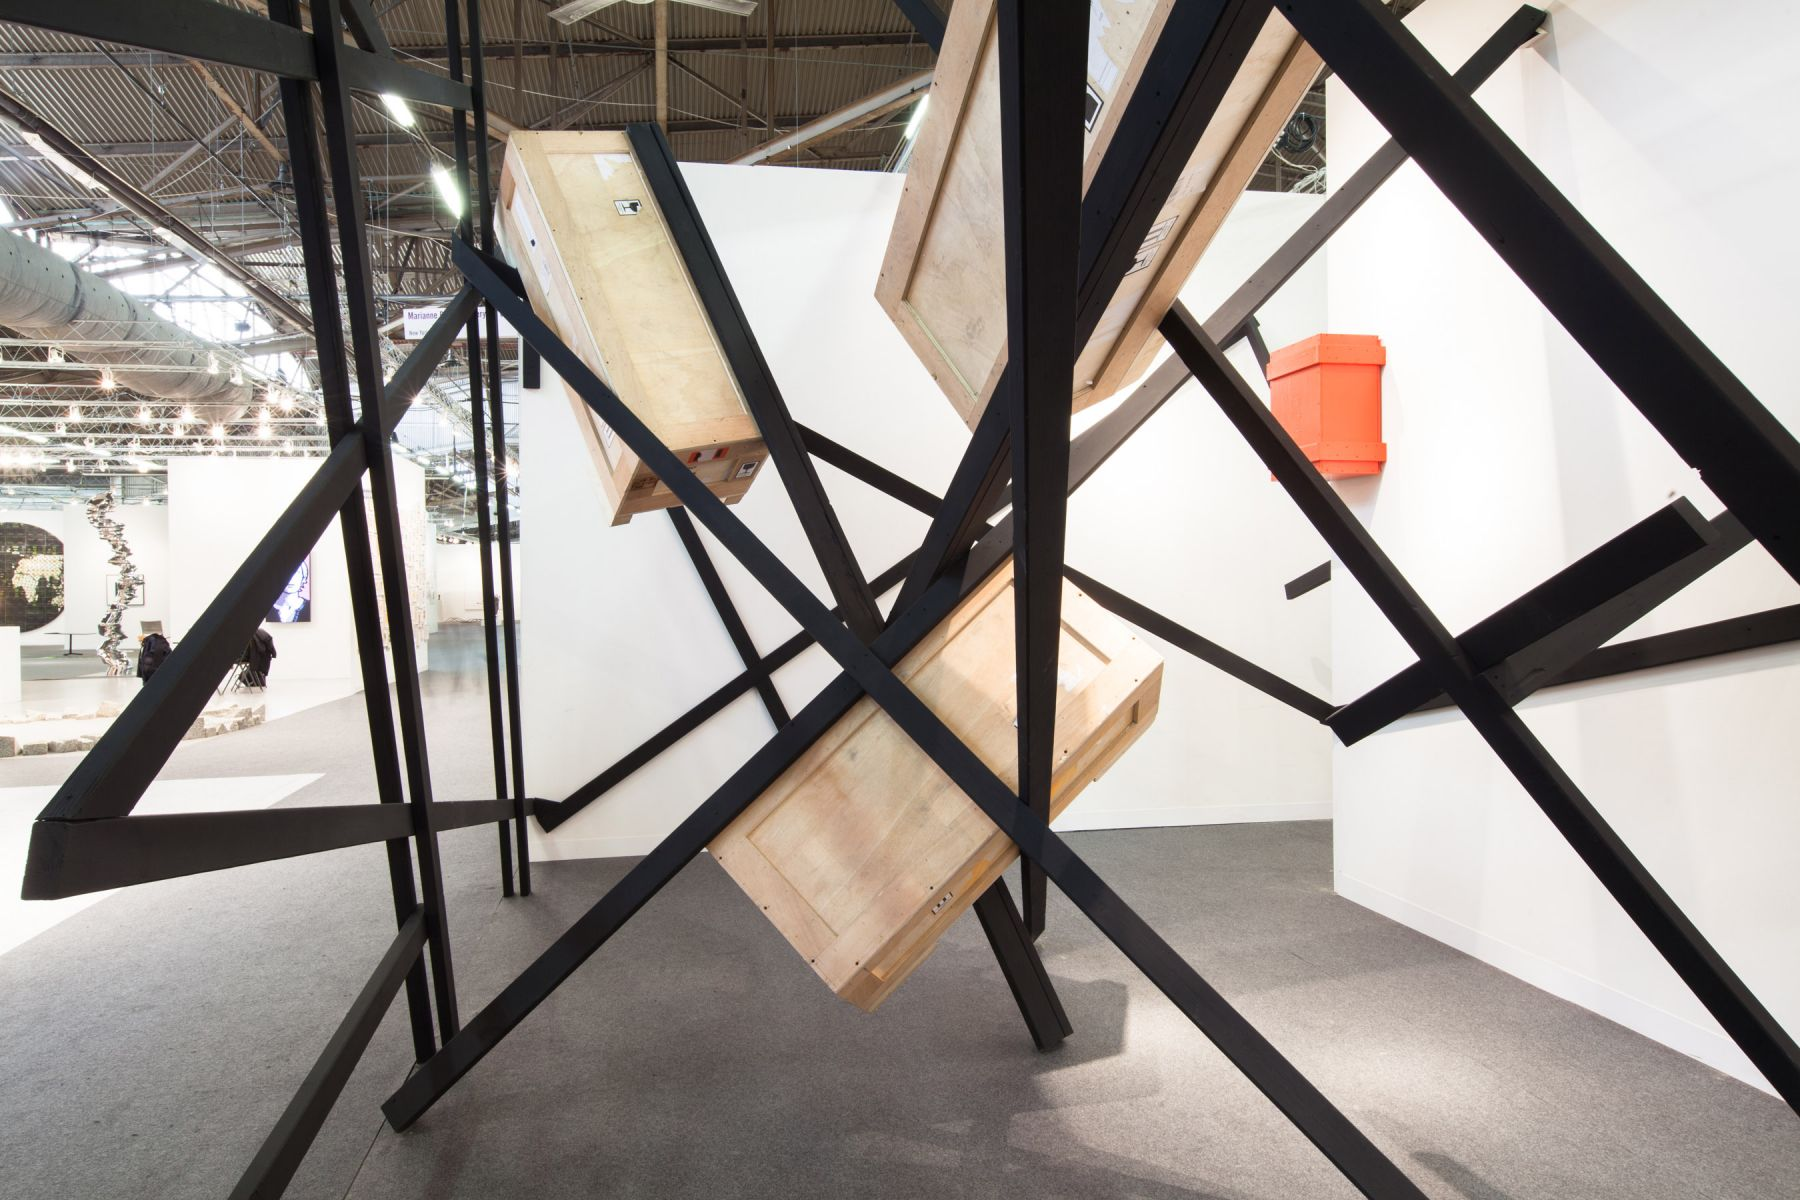 Installation View, The Armory Show 2014,Barricade I, August 7 – September 12, 2014